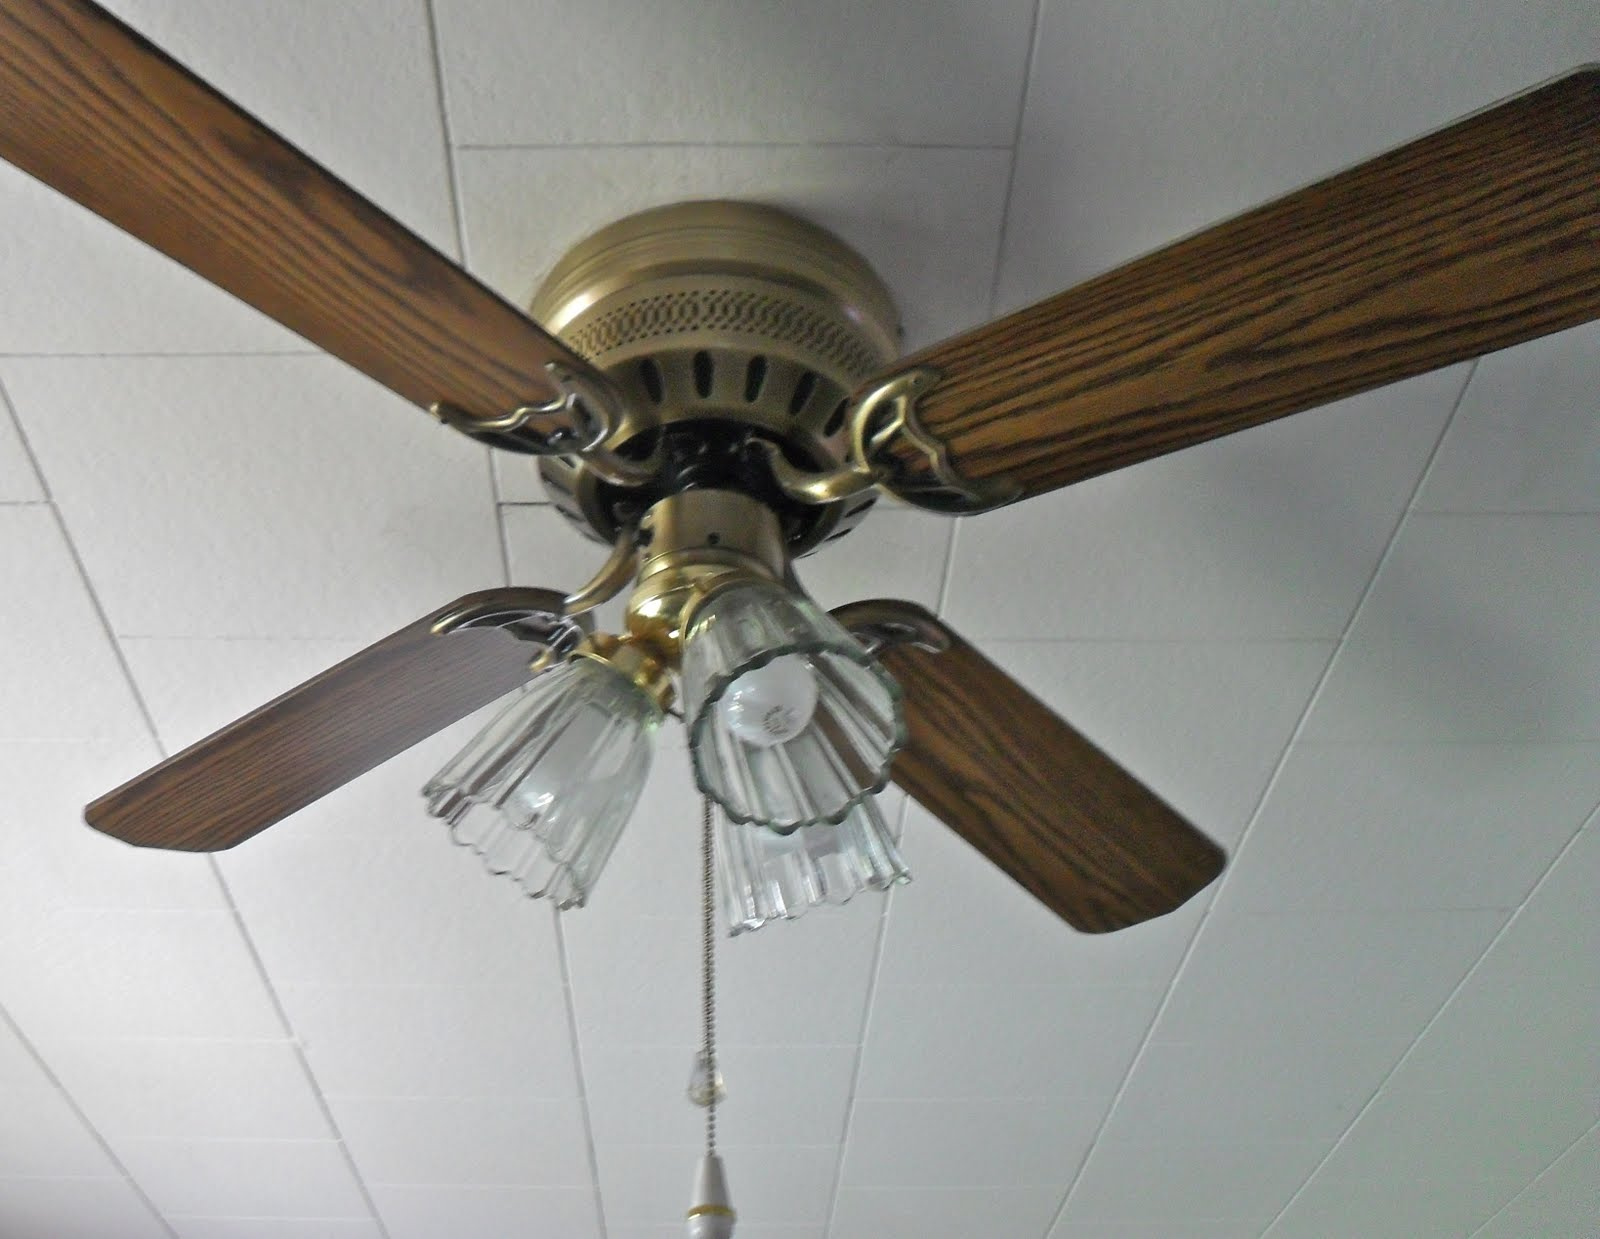 Living Room Ceiling Fans : The remodeled life shining light